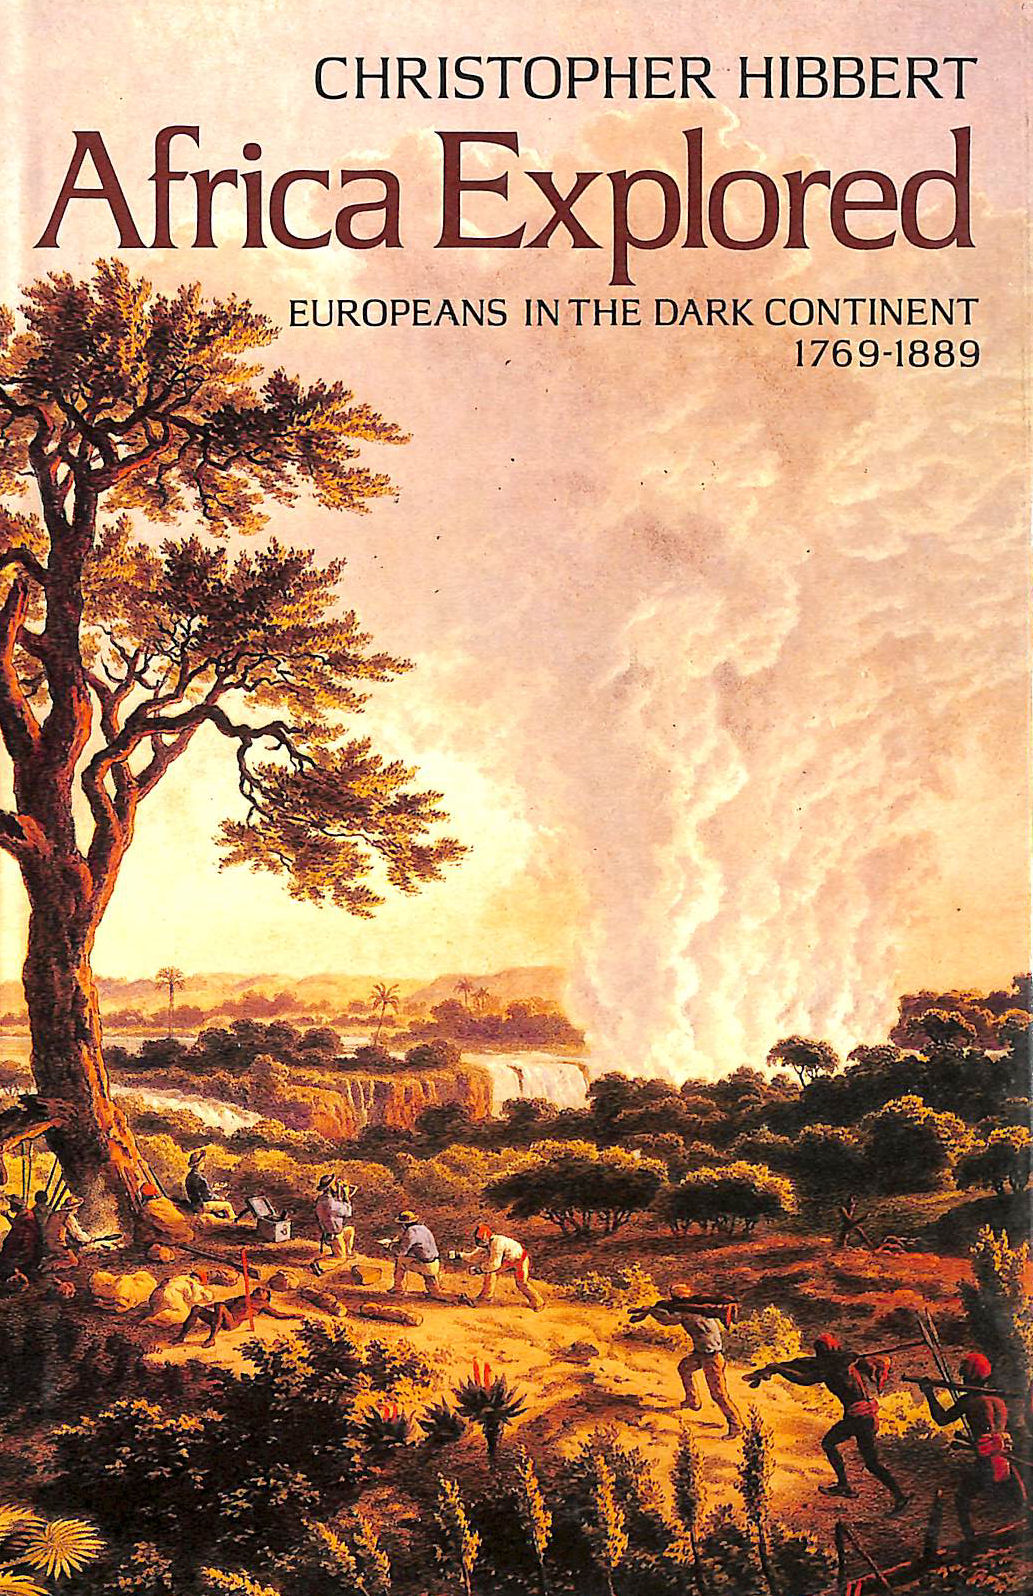 Image for Africa Explored: Europeans In The Dark Continent, 1769-1889